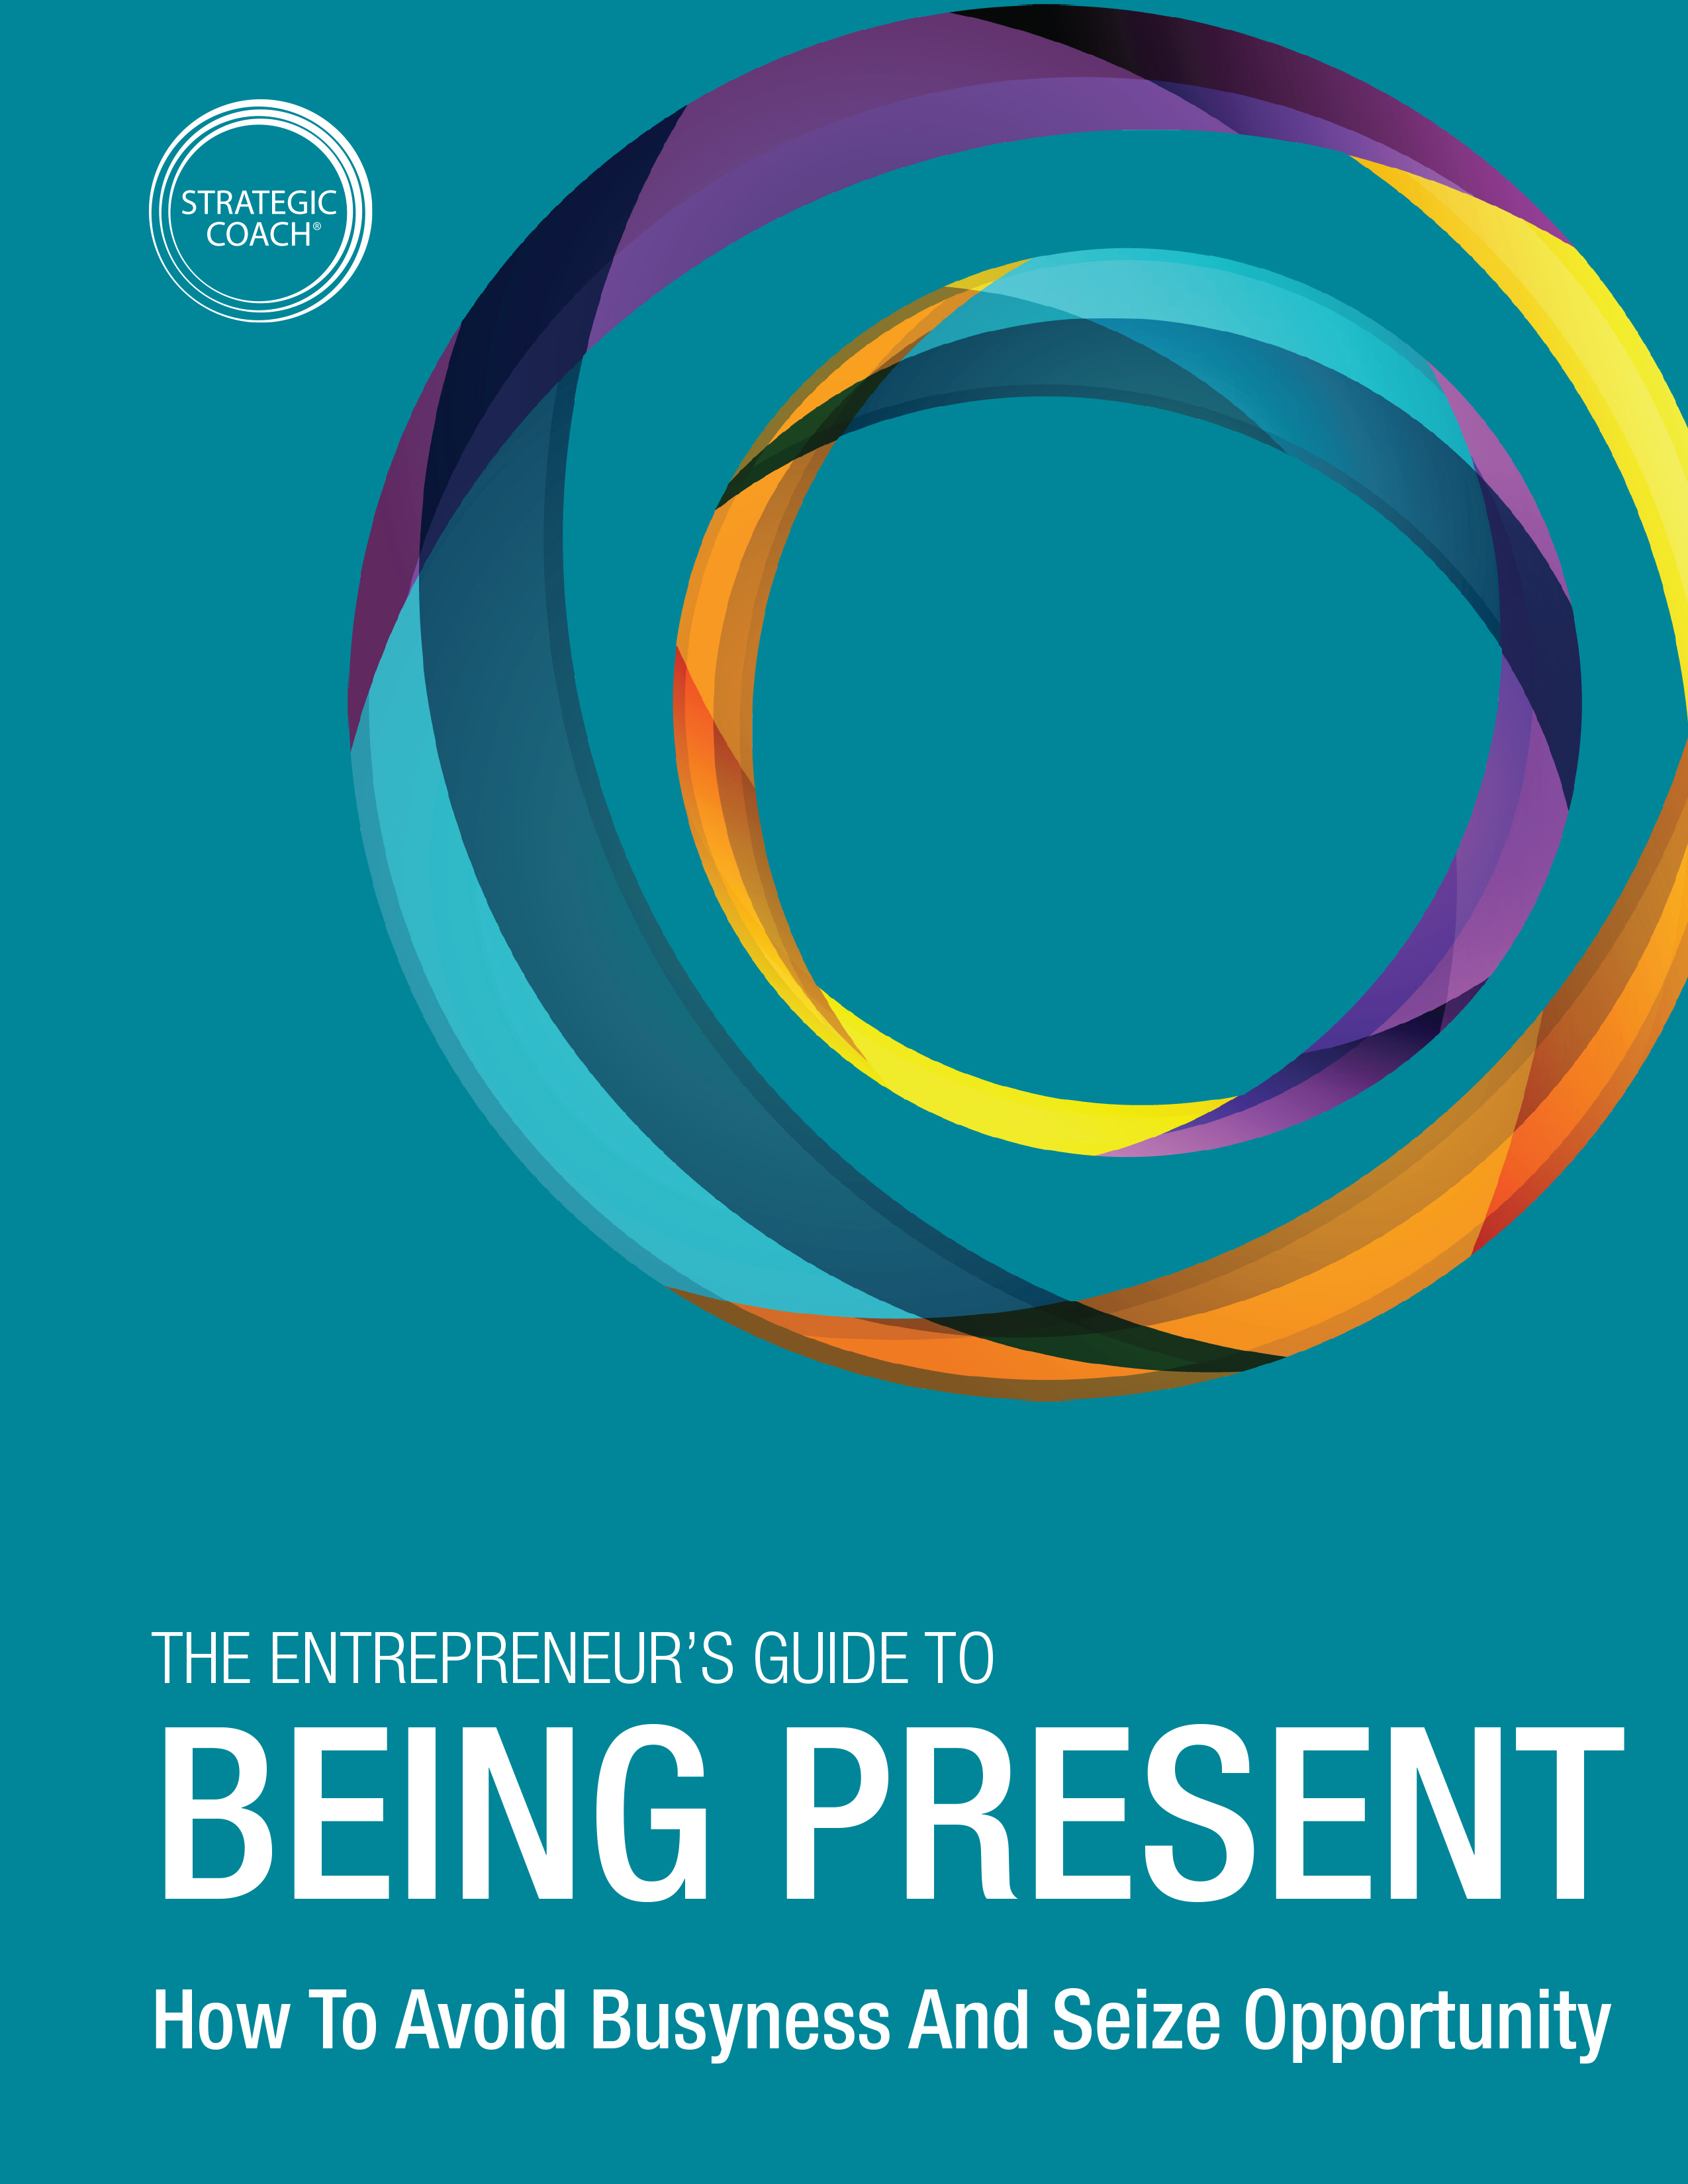 The Entrepreneur's Guide To Being Present